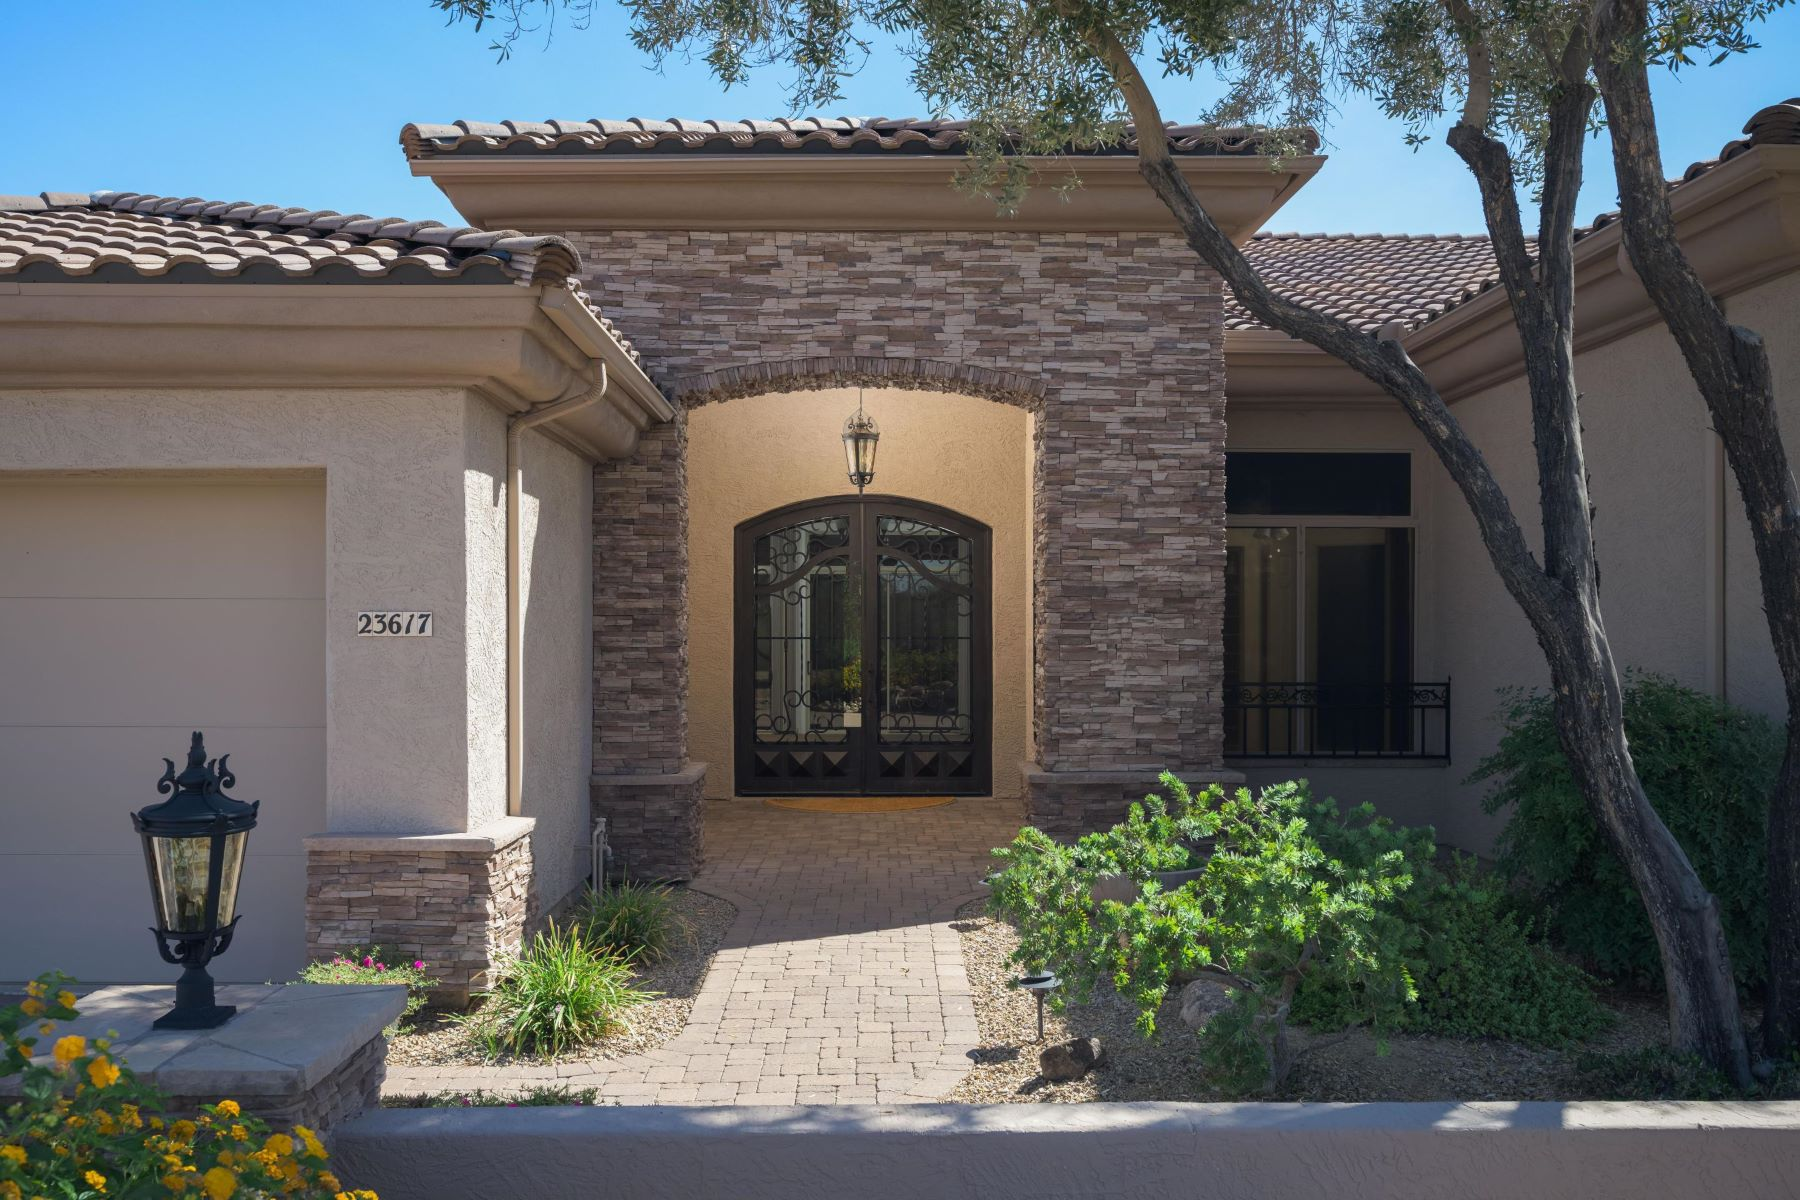 Single Family Homes for Sale at Pinnacle Hill 23617 N 55th St. DR Glendale, Arizona 85310 United States